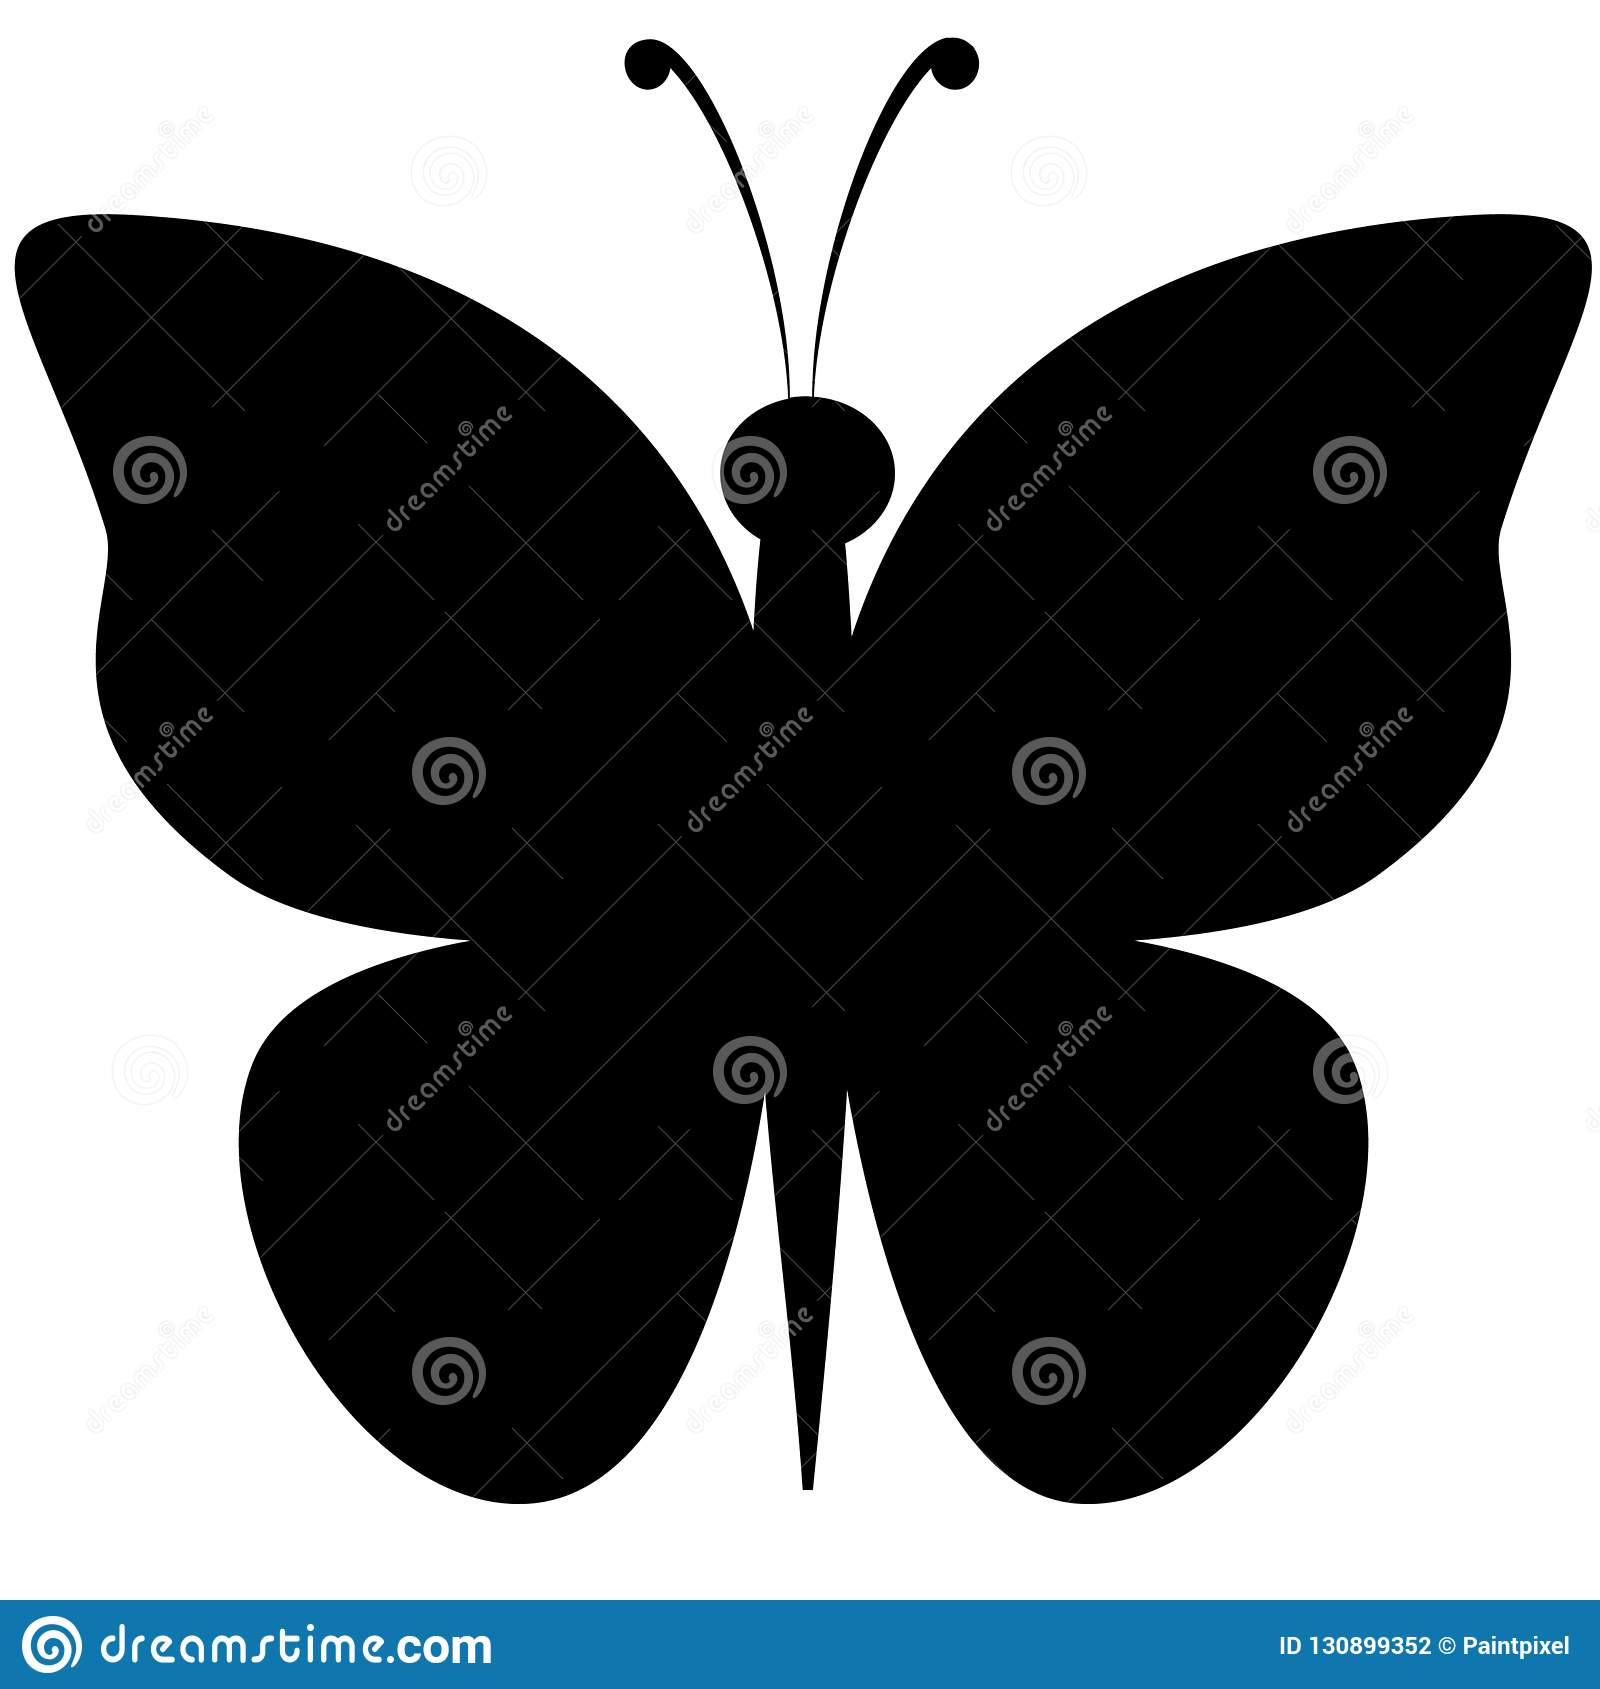 hight resolution of black silhouette clipart of butterfly with outstretched wings